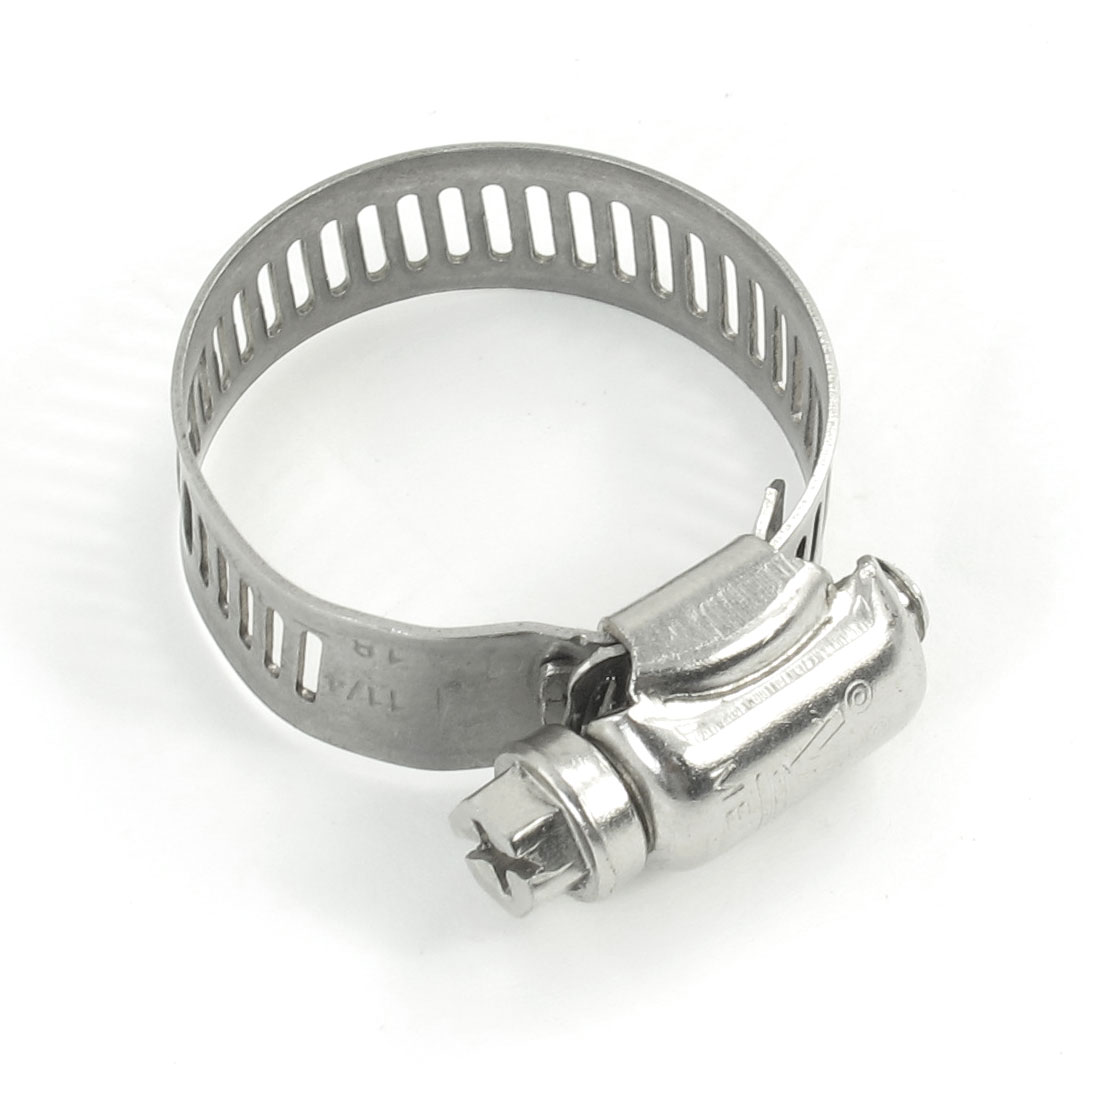 Bolt Release 18mm to 35mm Silver Tone Stainless Steel Adjustable Hose Clamp